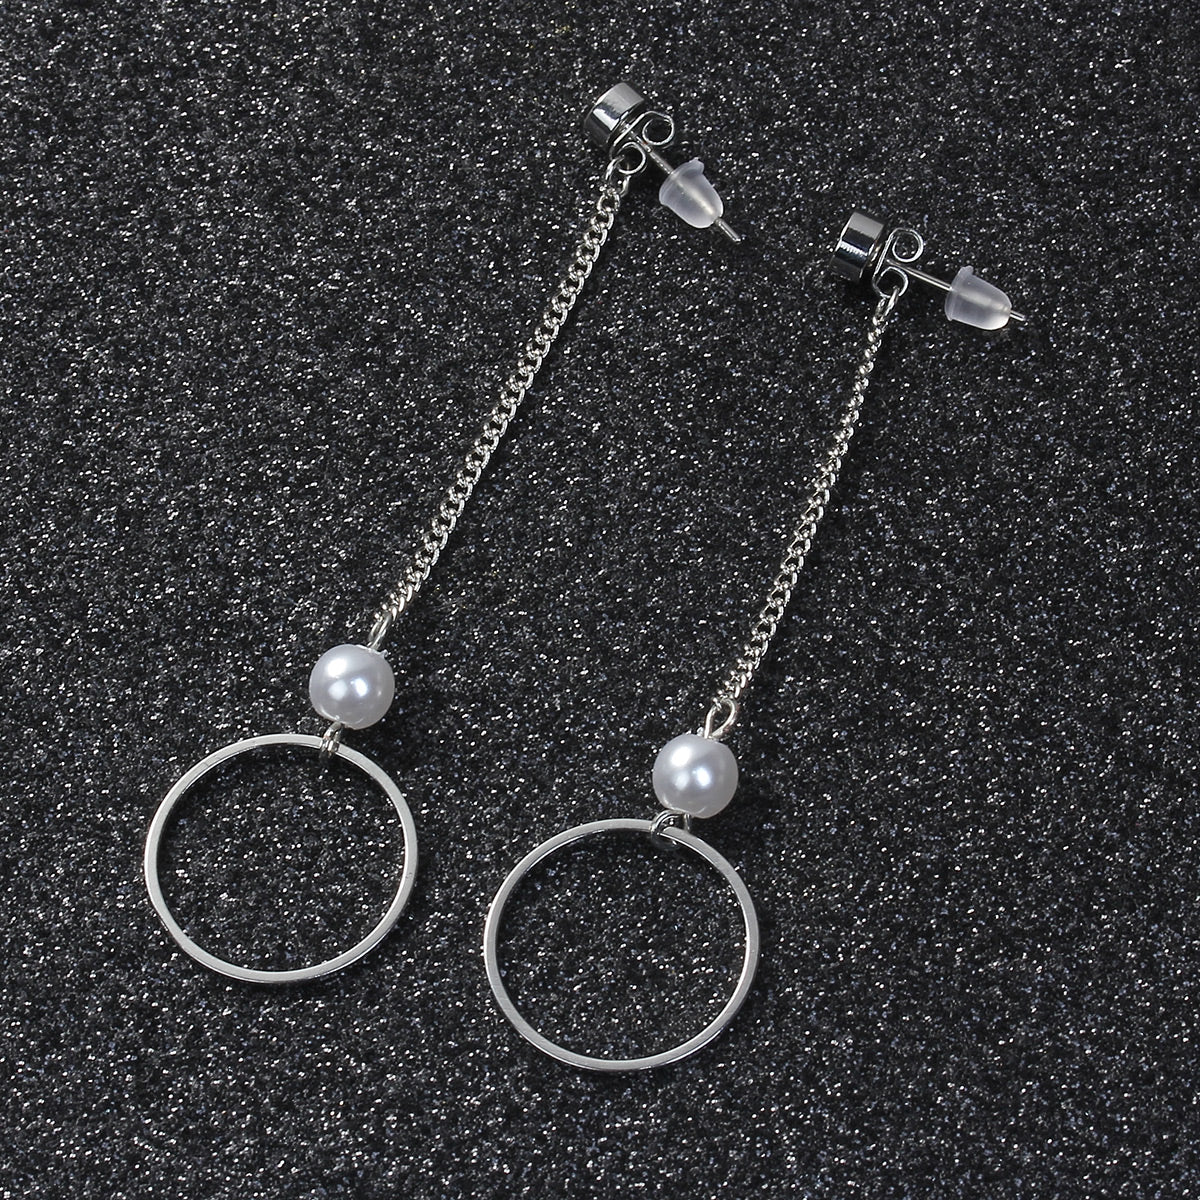 Dangle earrings with circle/hexagon